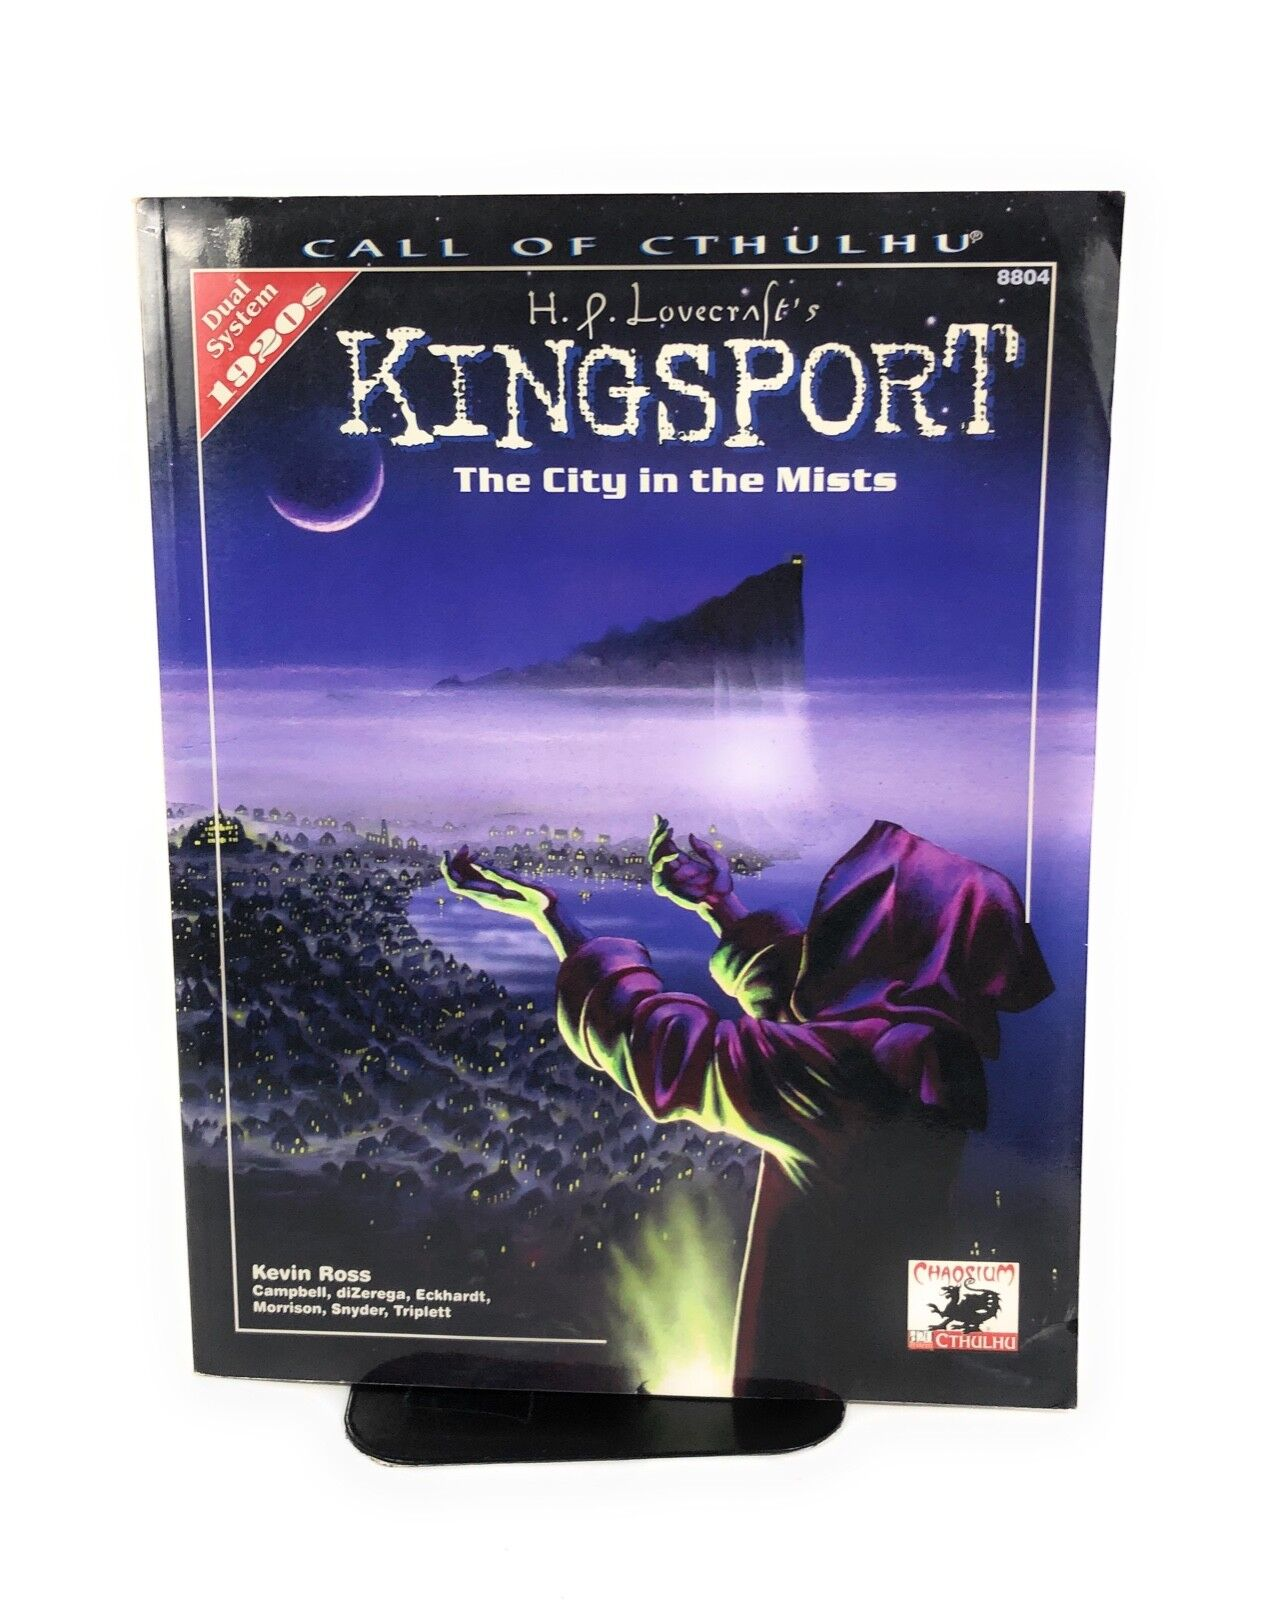 Chaosium Call of Cthulh H.P. Lovecraft's Kingsport - The City in the Mist SC VG